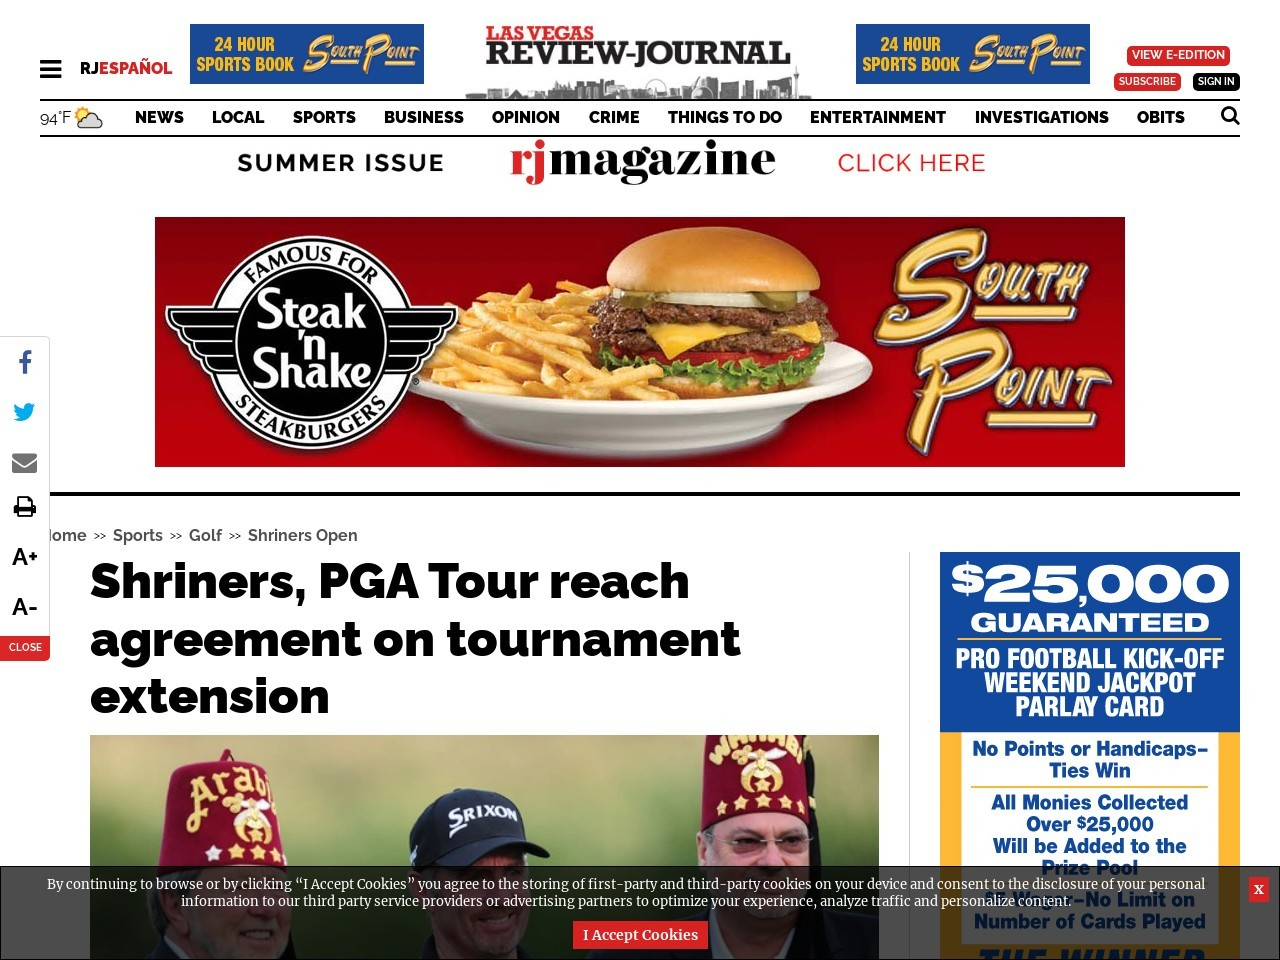 Shriners, PGA Tour reach agreement on tournament extension